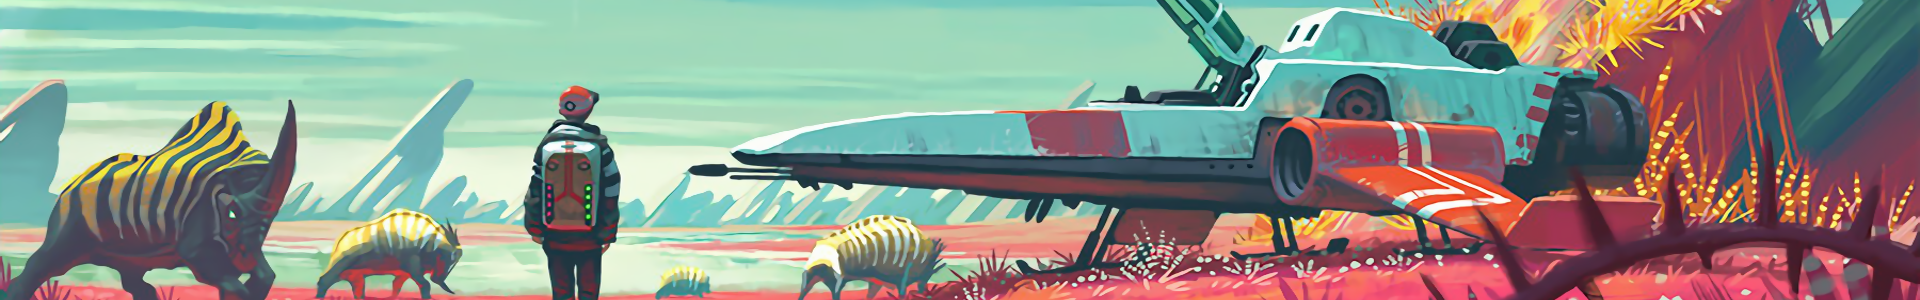 Banner media of No Man's Sky video game.